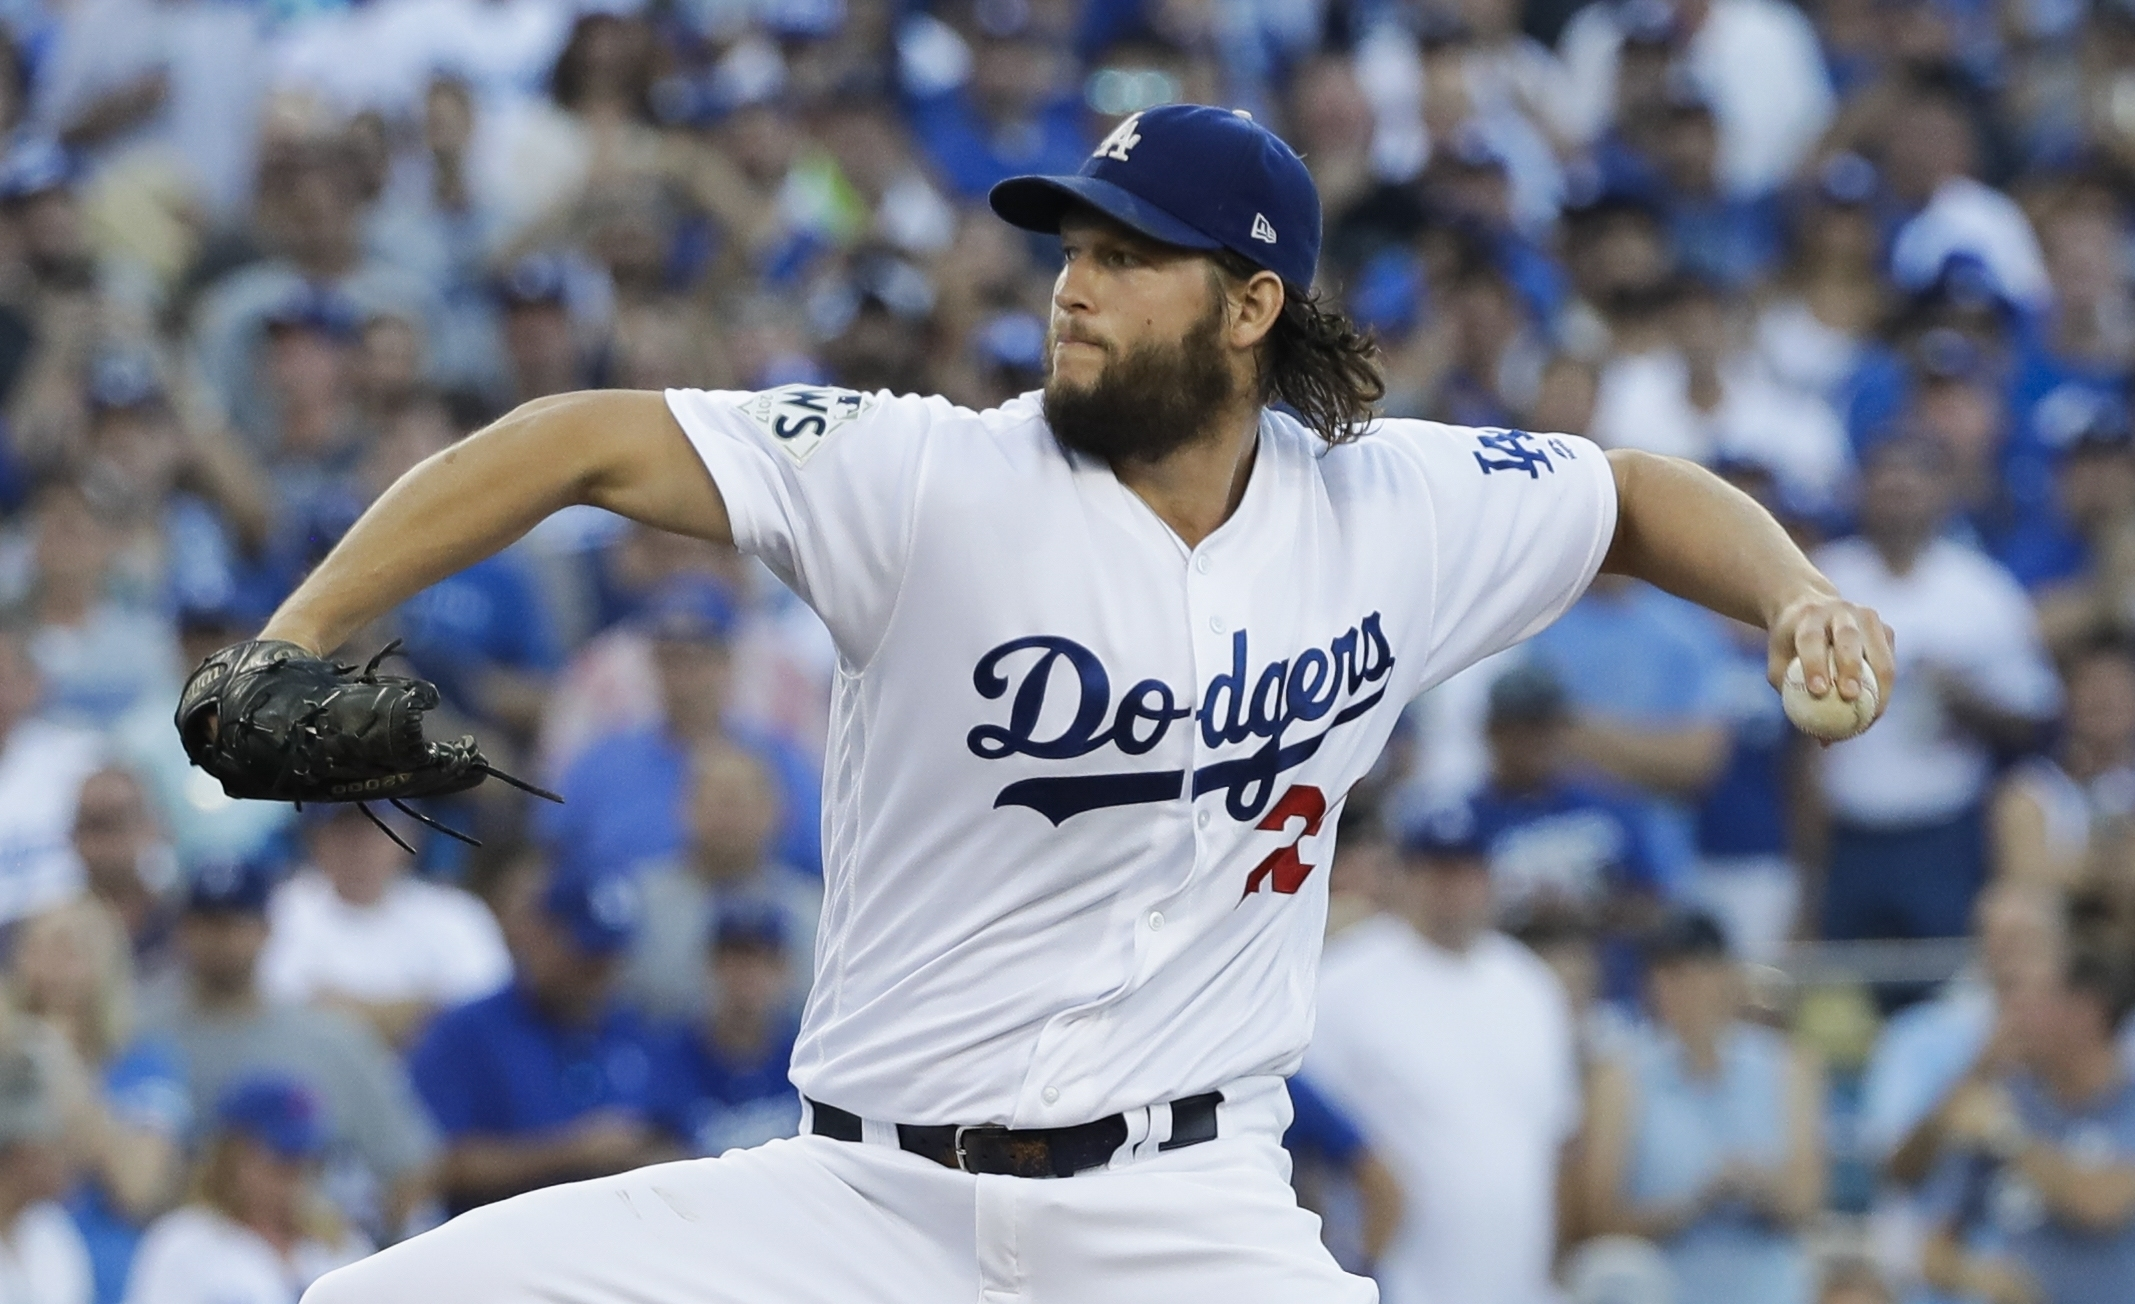 Los Angeles Dodgers starting pitcher Clayton Kershaw throws during the first inning of Game 1 of baseball's World Series against the Houston Astros Tuesday, Oct. 24, 2017, in Los Angeles. (AP Photo/David J. Phillip)